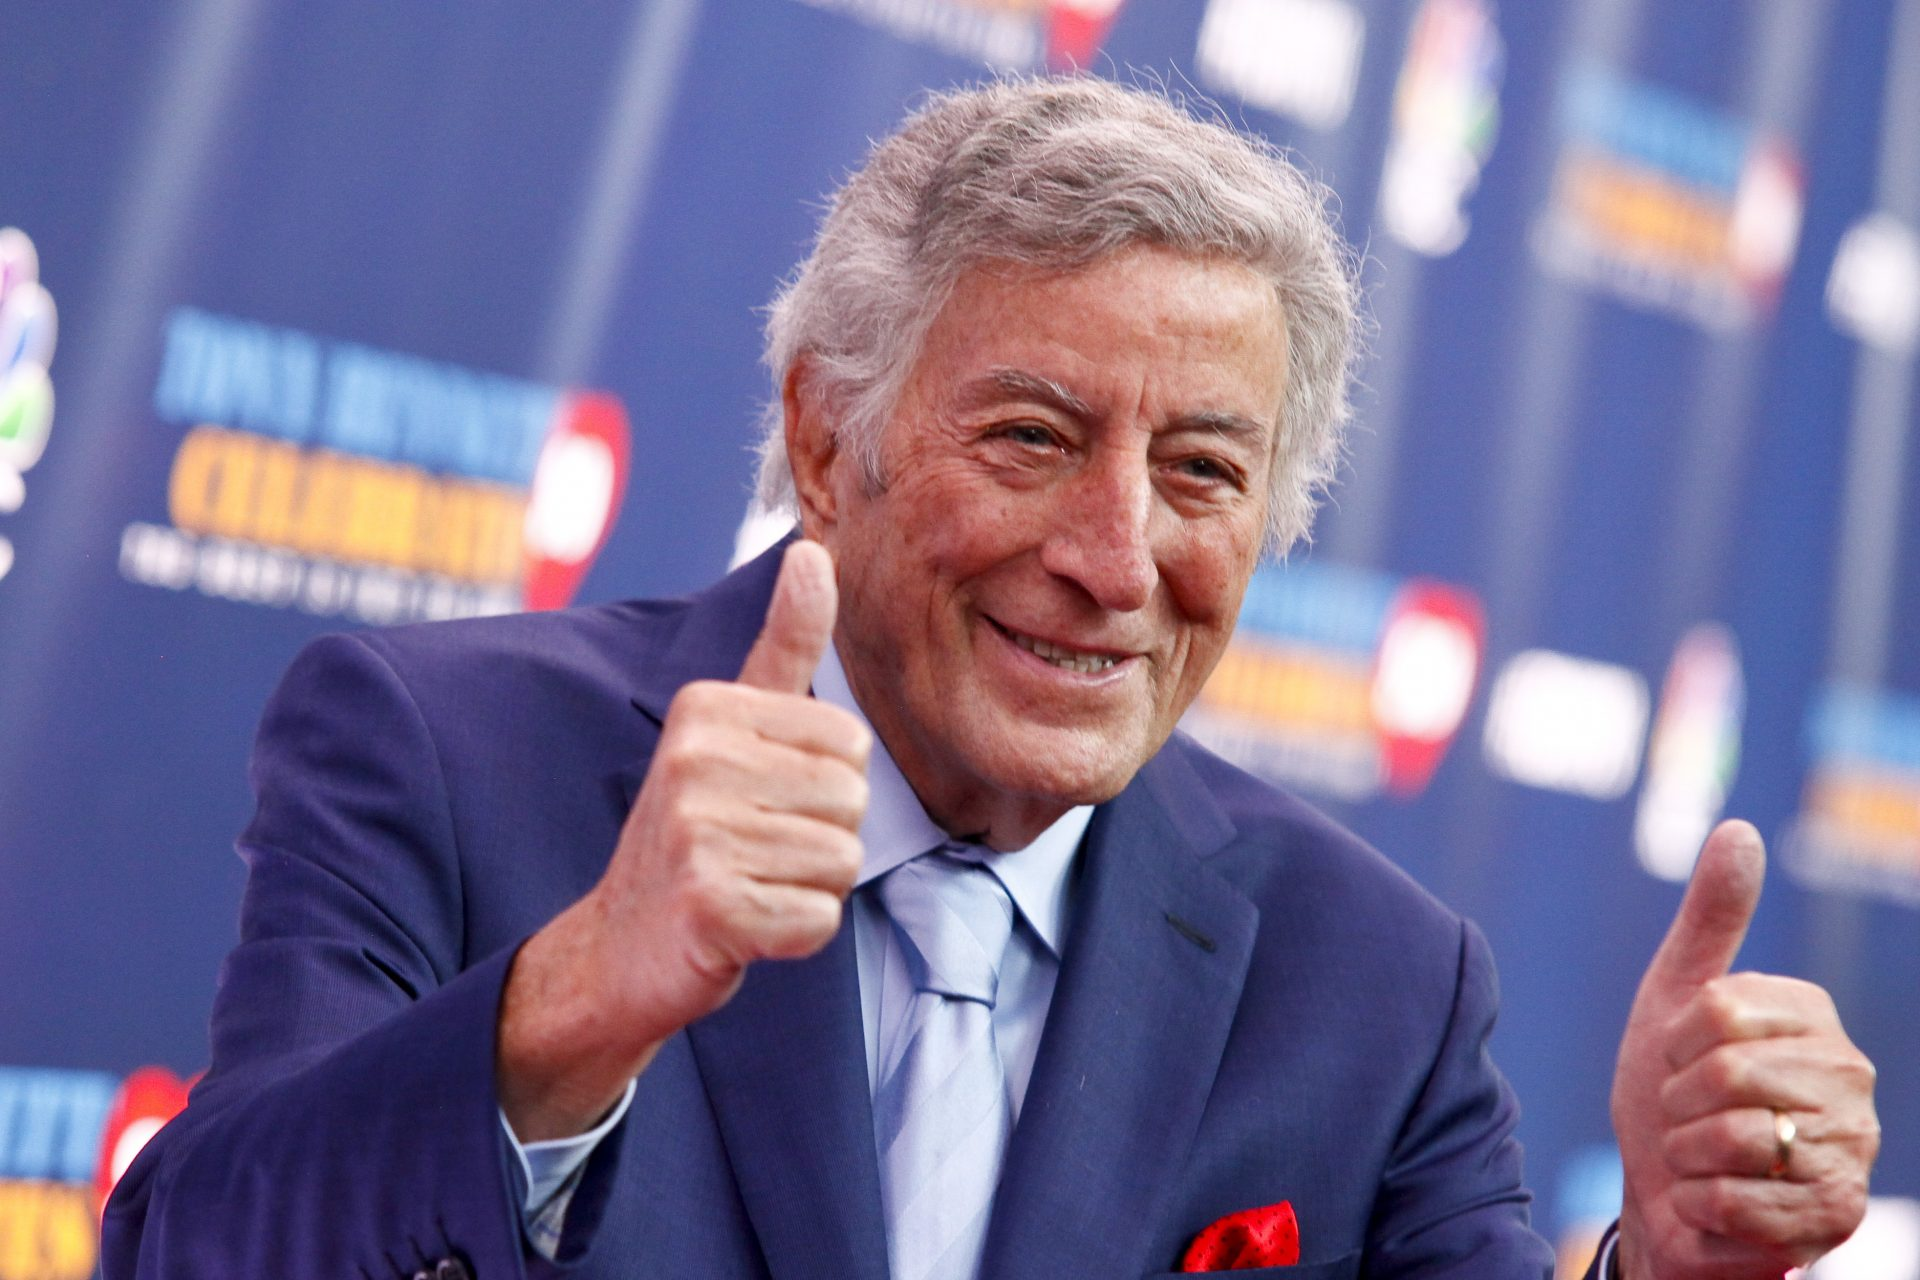 Tony Bennett: his life, music, and the Alzheimer's diagnosis